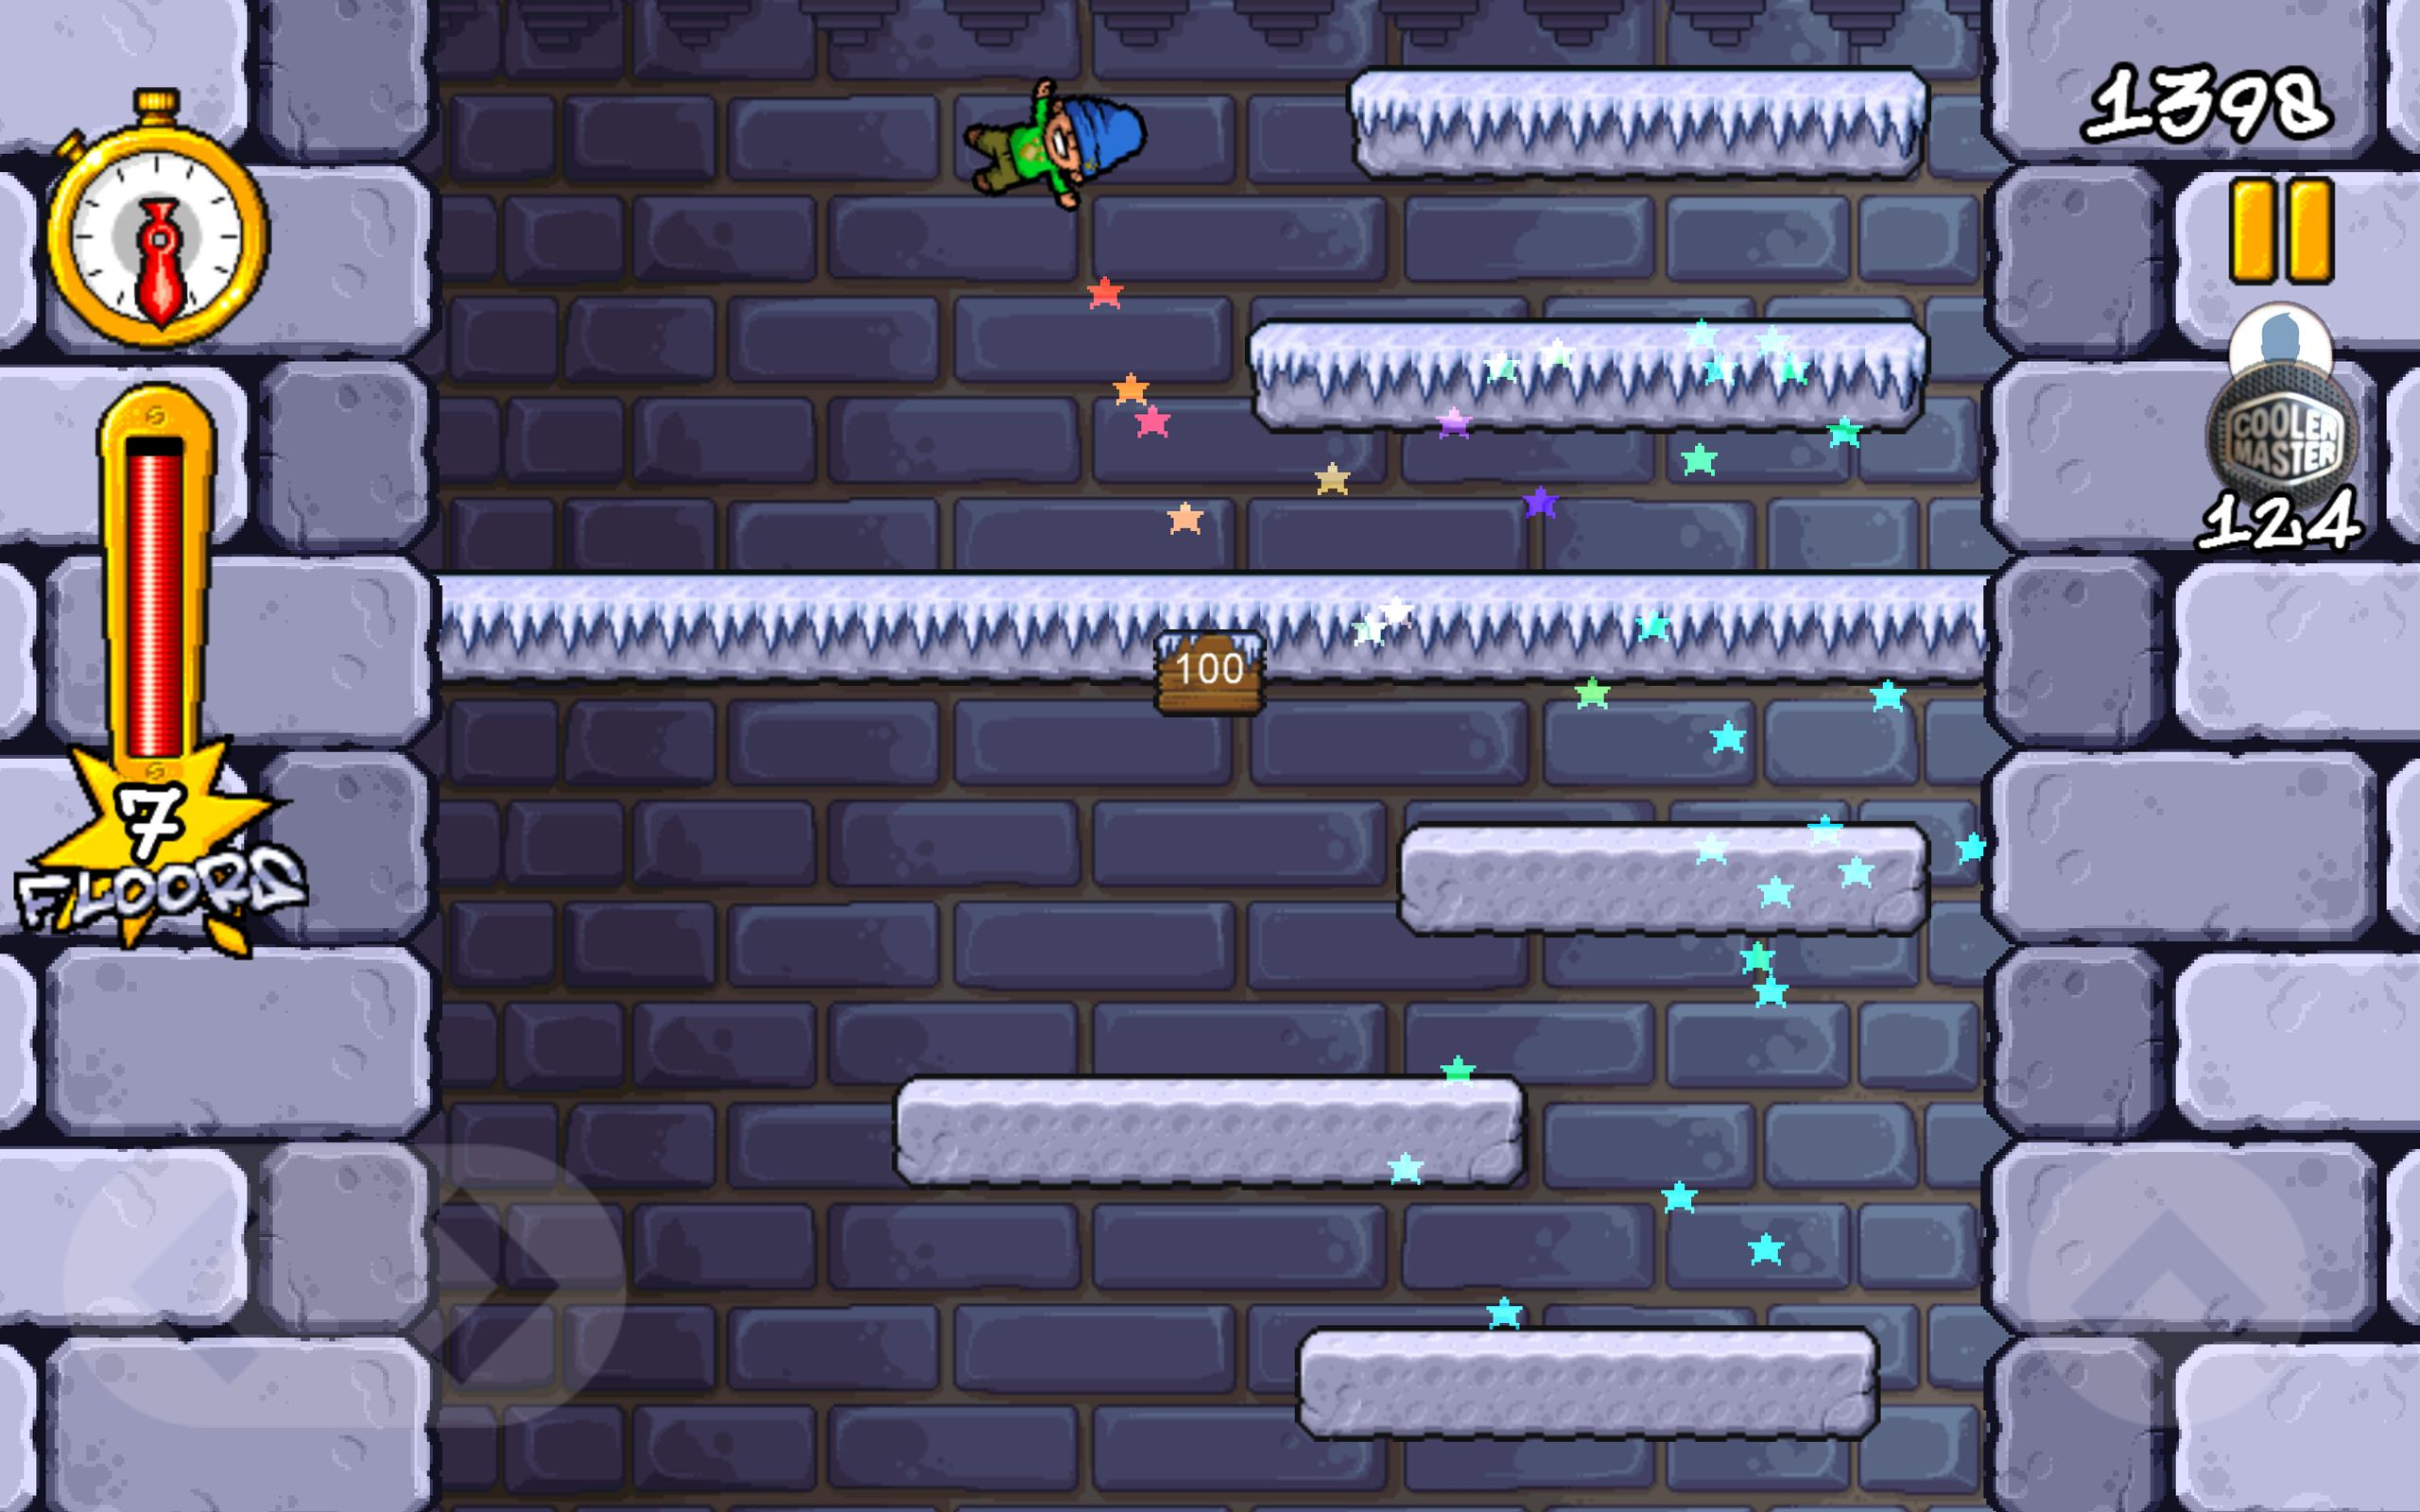 Icy tower free download for windows 10, 7, 8/8. 1 (64 bit/32 bit.